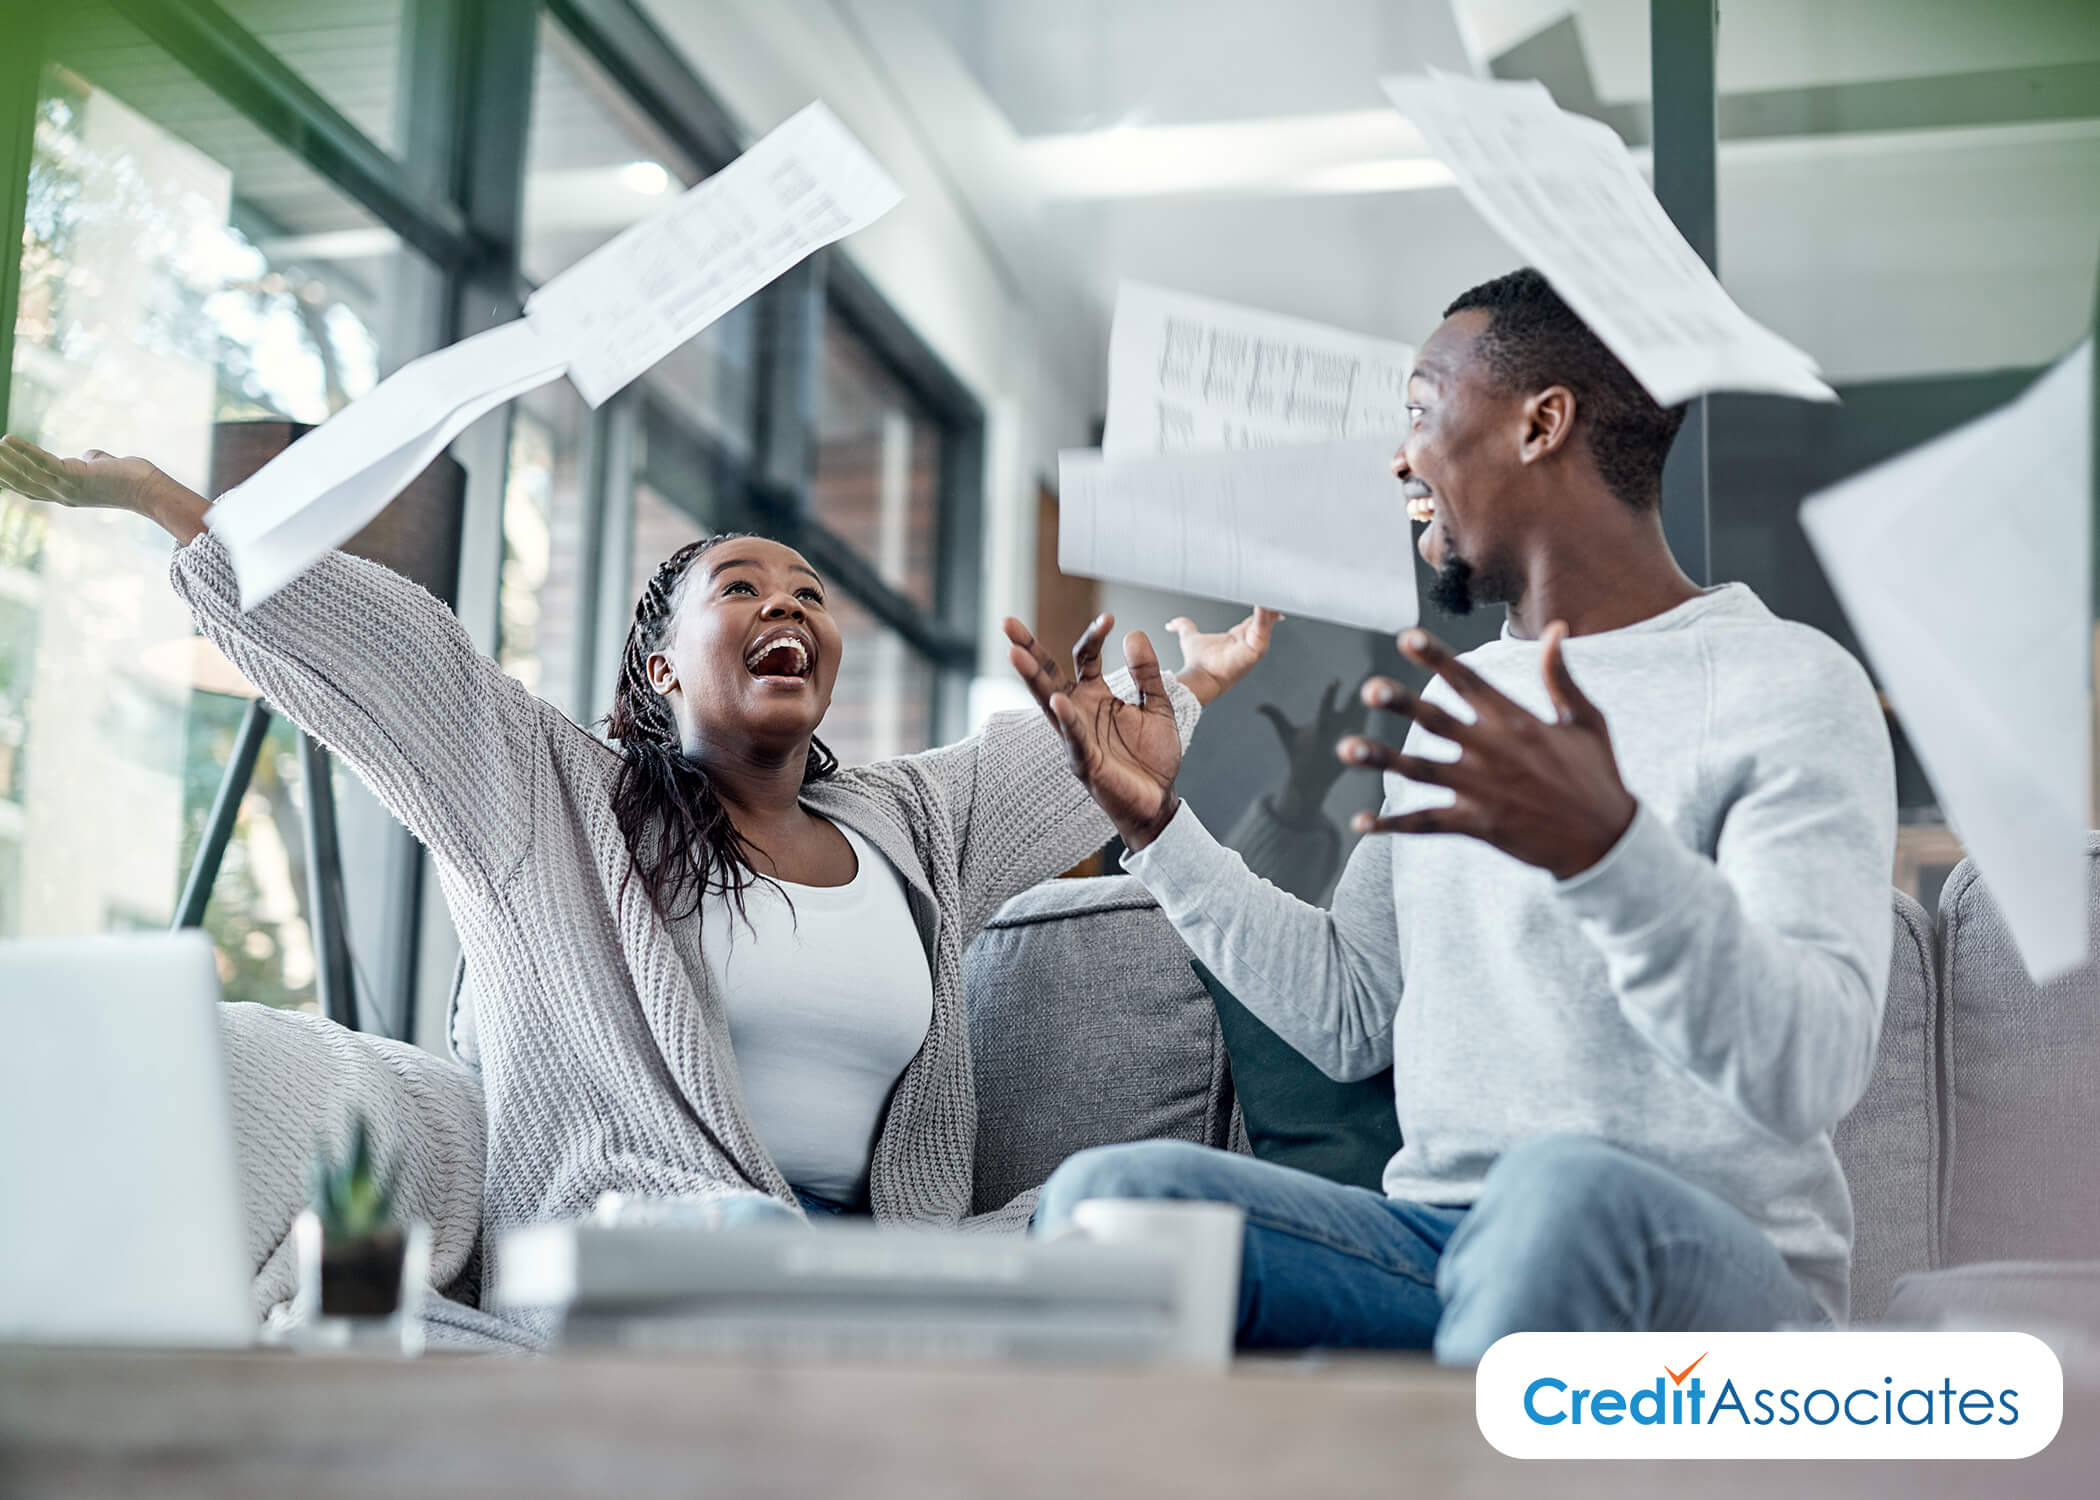 Relieve Yourself of Lingering Tax Debt